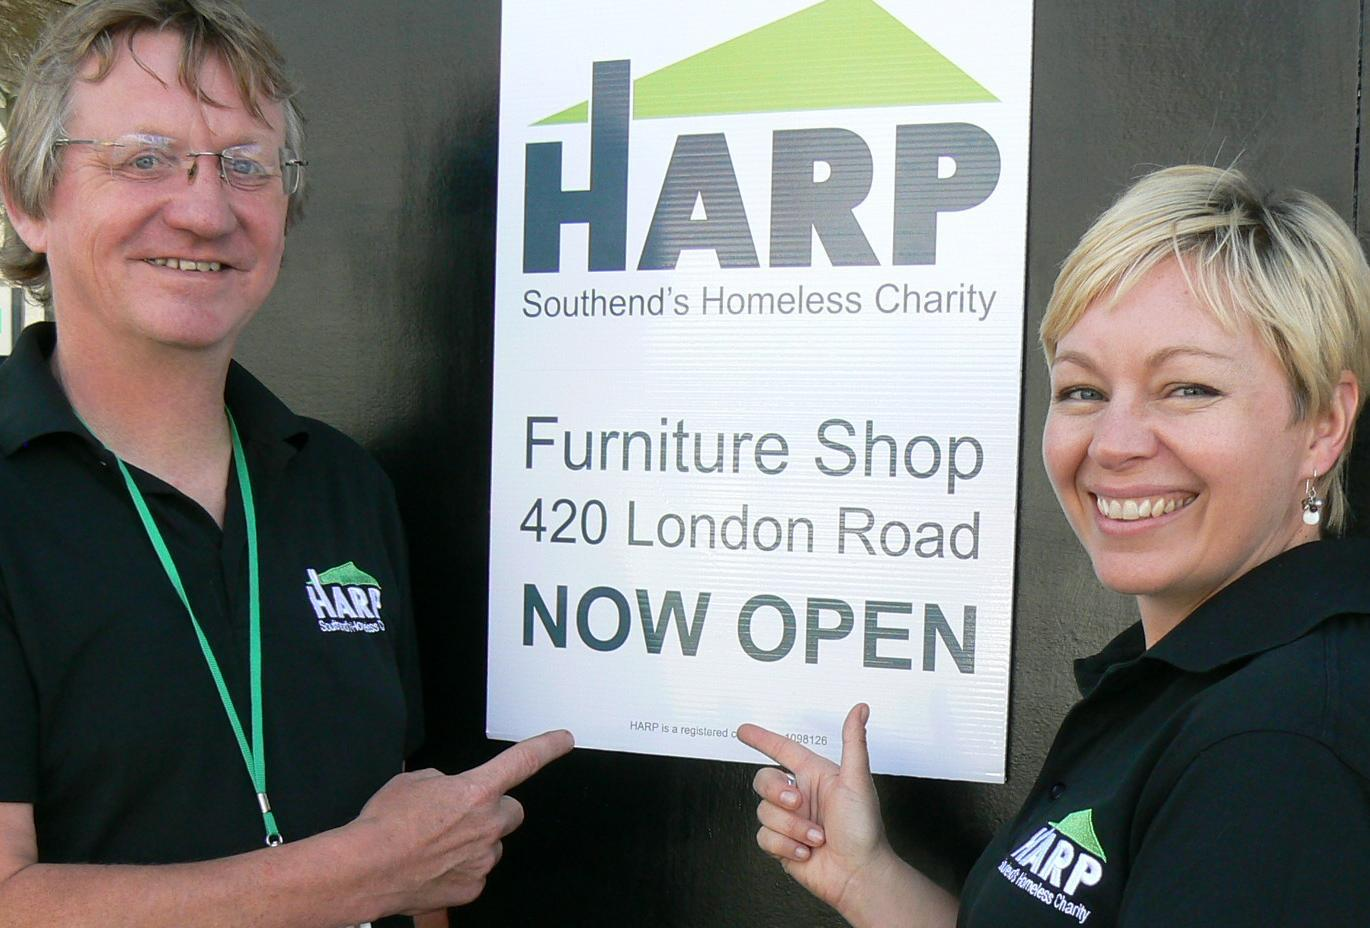 Raising funds – Tony Dunn and Alison Williams of Harp open the new centre